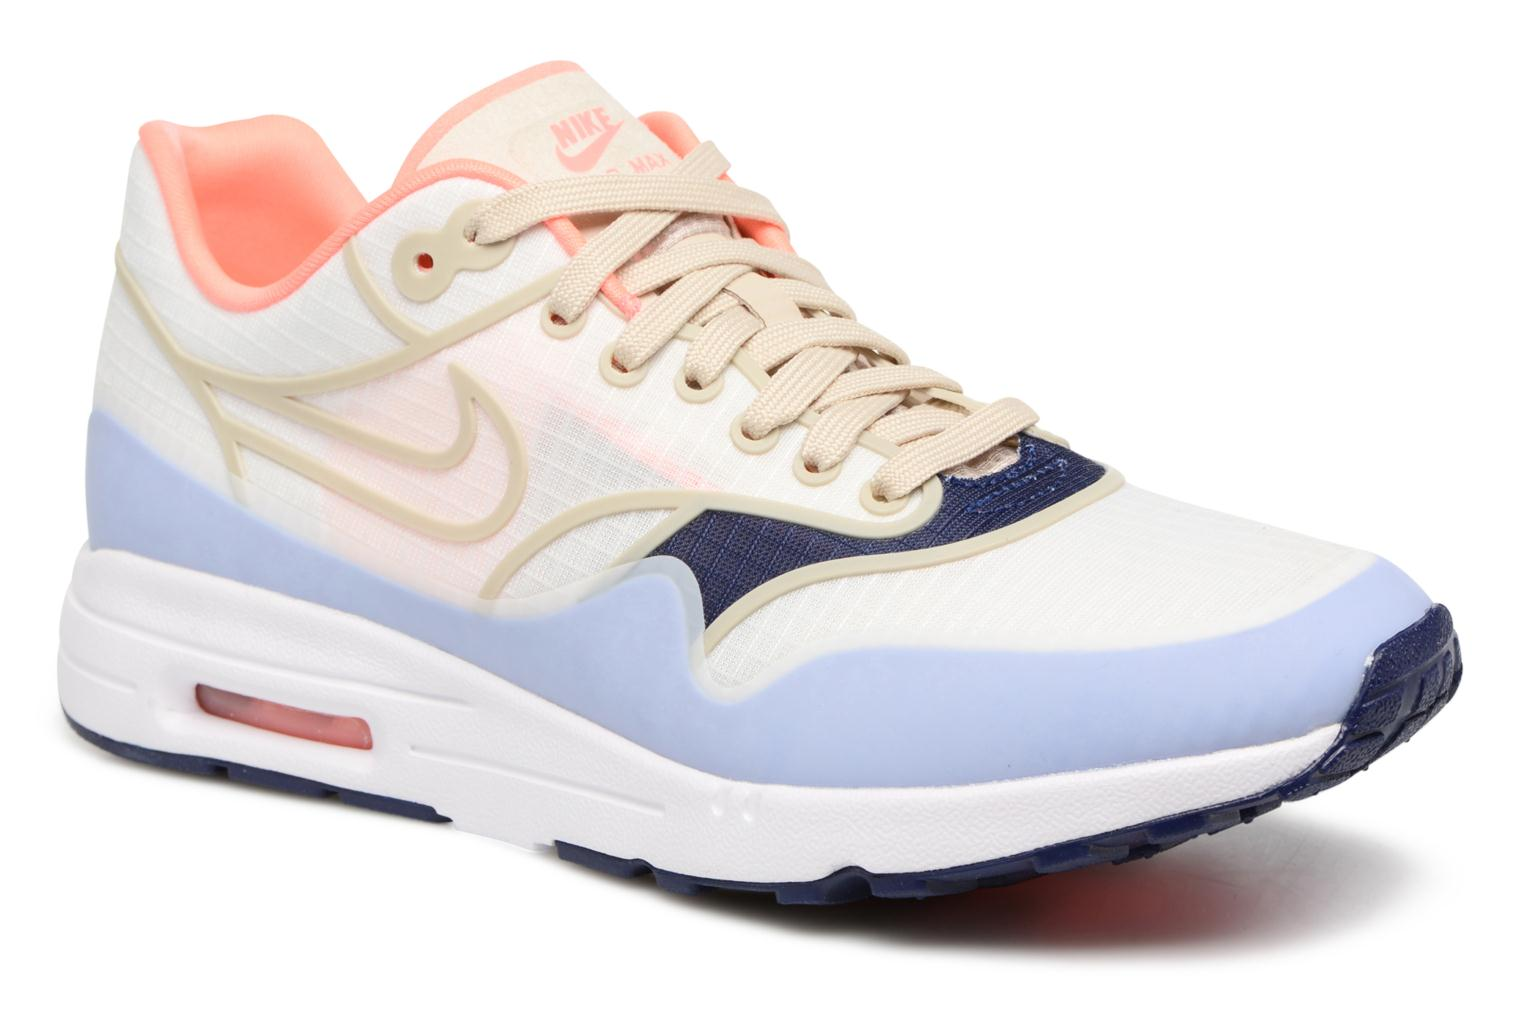 Nike Chaussures AIR MAX 1 ULTRA 2.0 W Acheter Des Prix Pas Cher 06Bkw